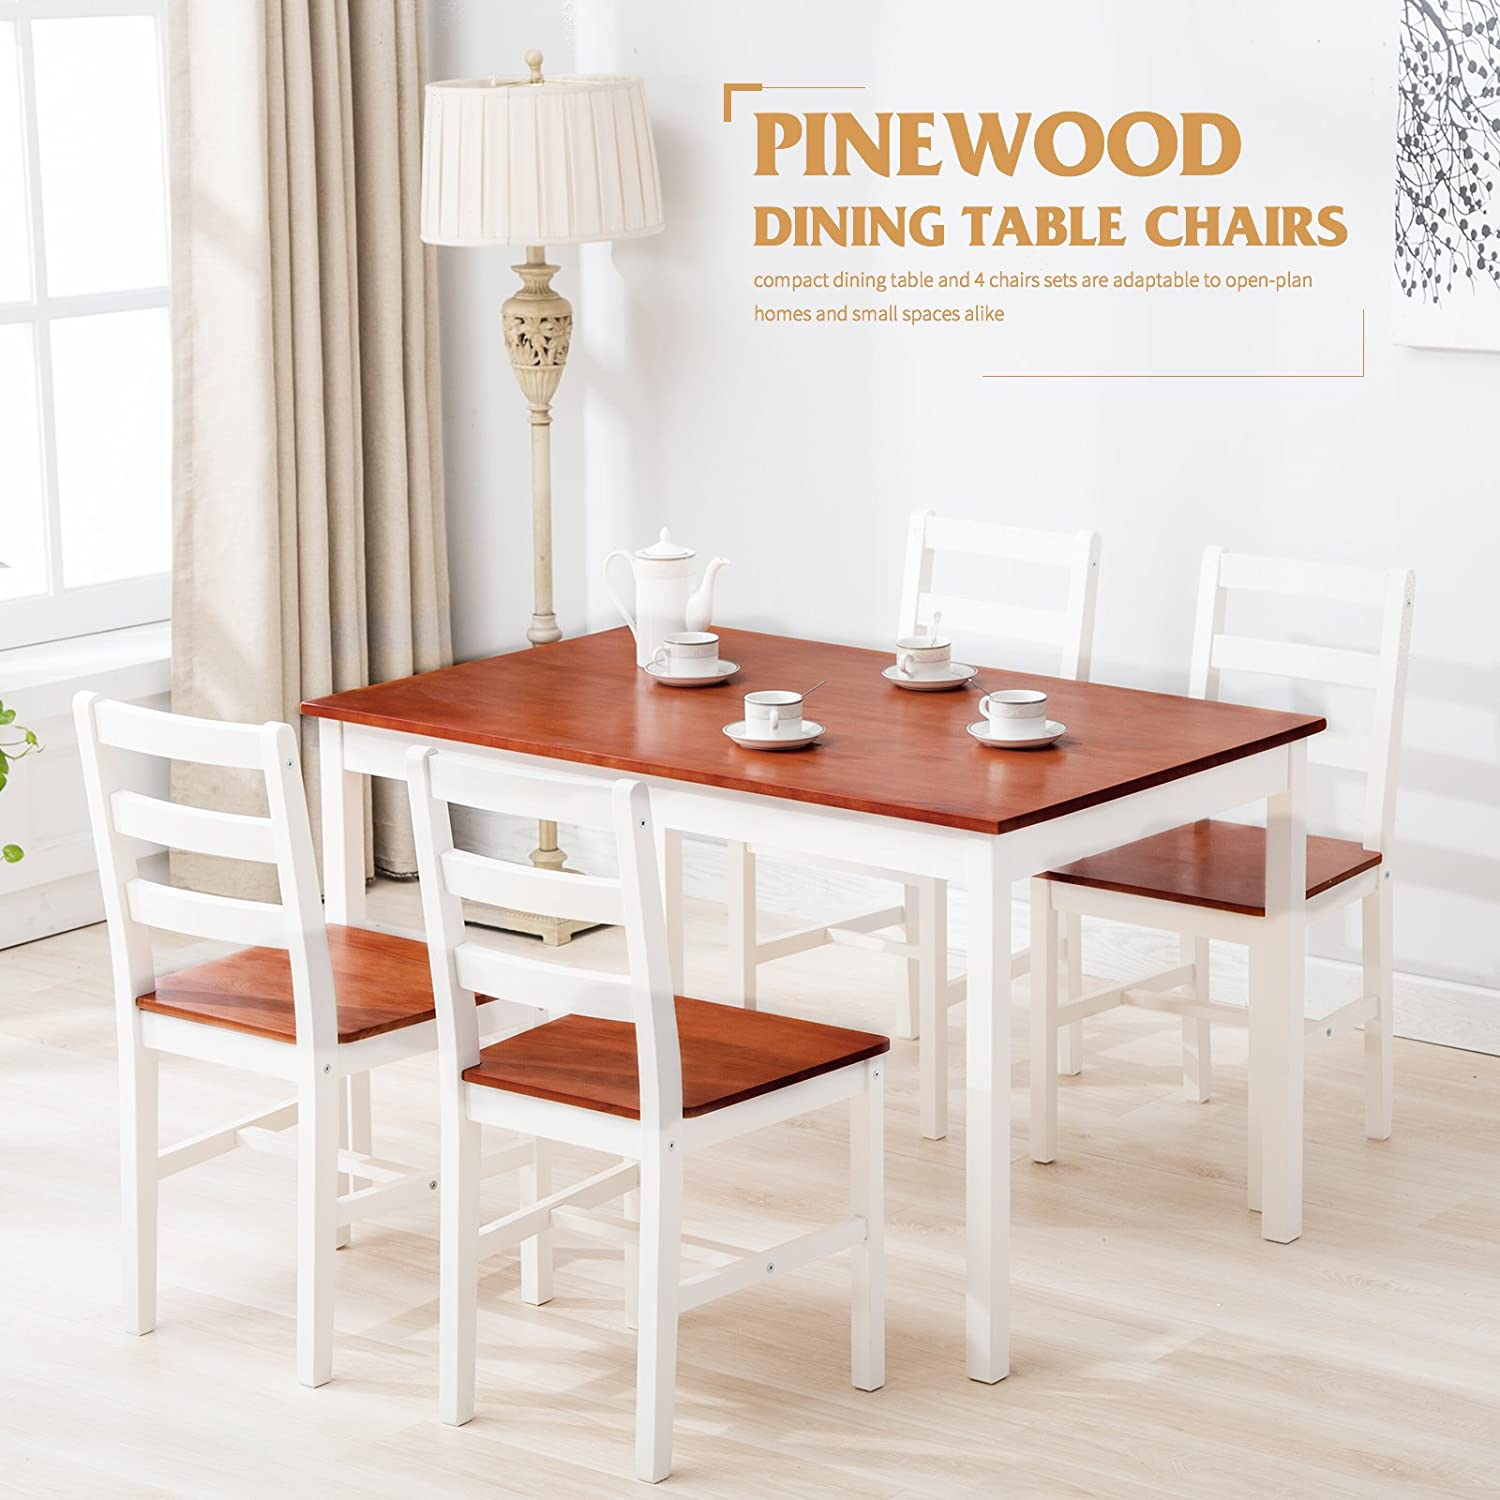 Mecor 5 Piece Dining Table Set for 4 Person Kitchen Room Natural Wood Furniture